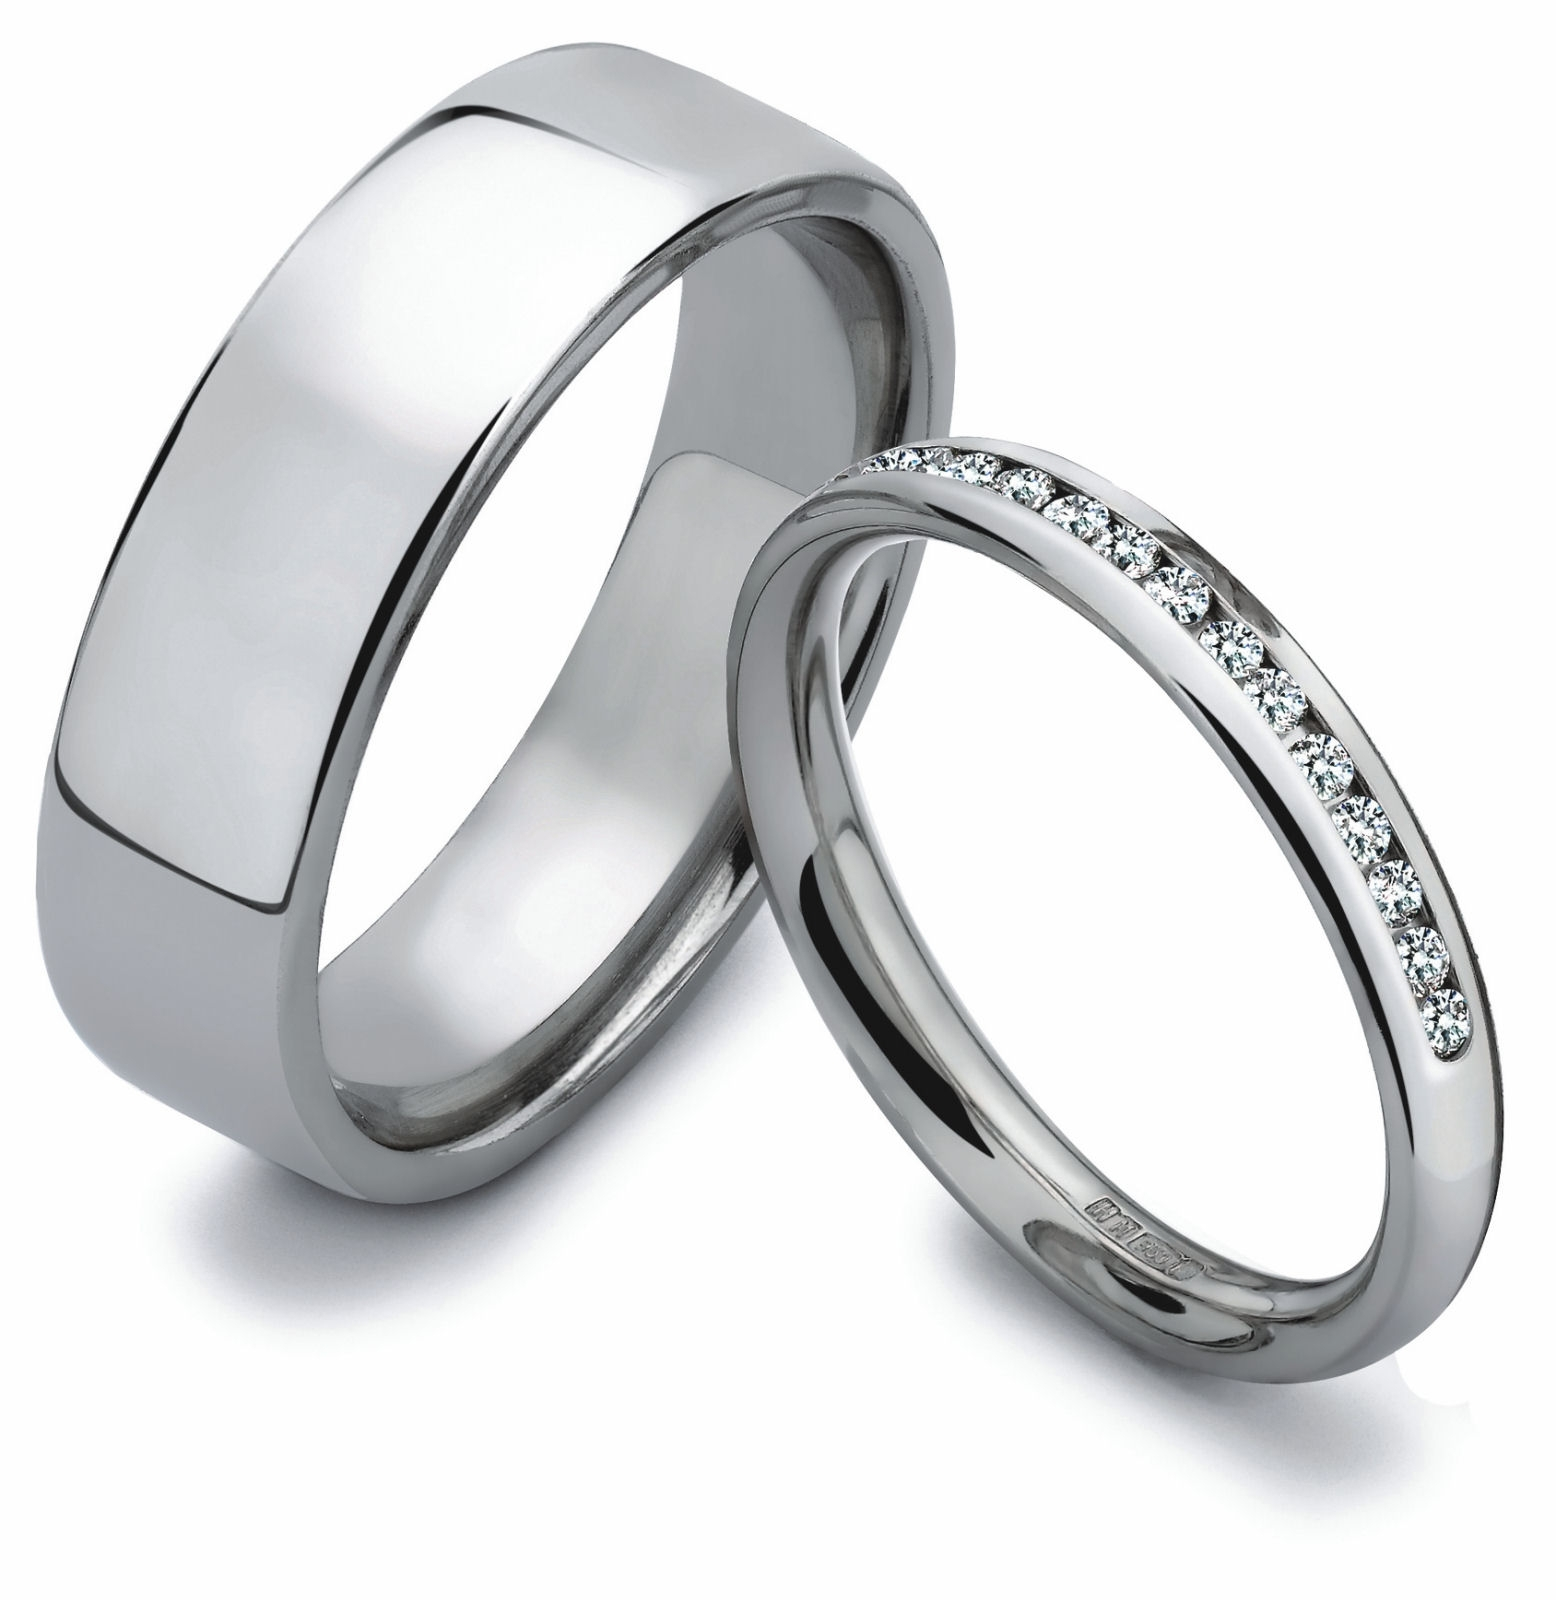 Wedding Bands: Wedding Bands For Her And Her In Newest His And Her Wedding Bands Sets (View 13 of 15)